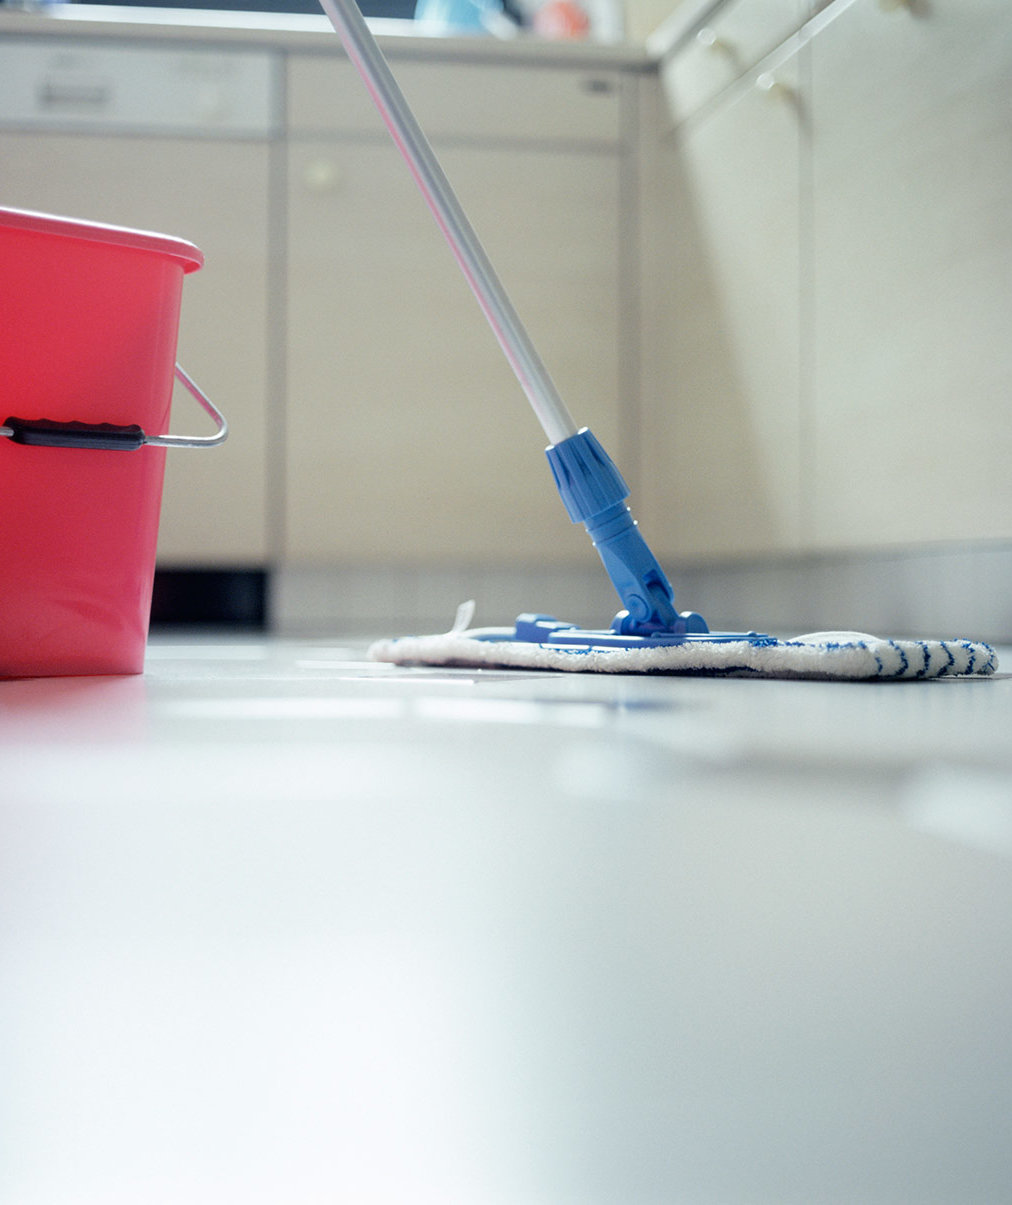 The One Mistake You're Making When Cleaning Your Floors